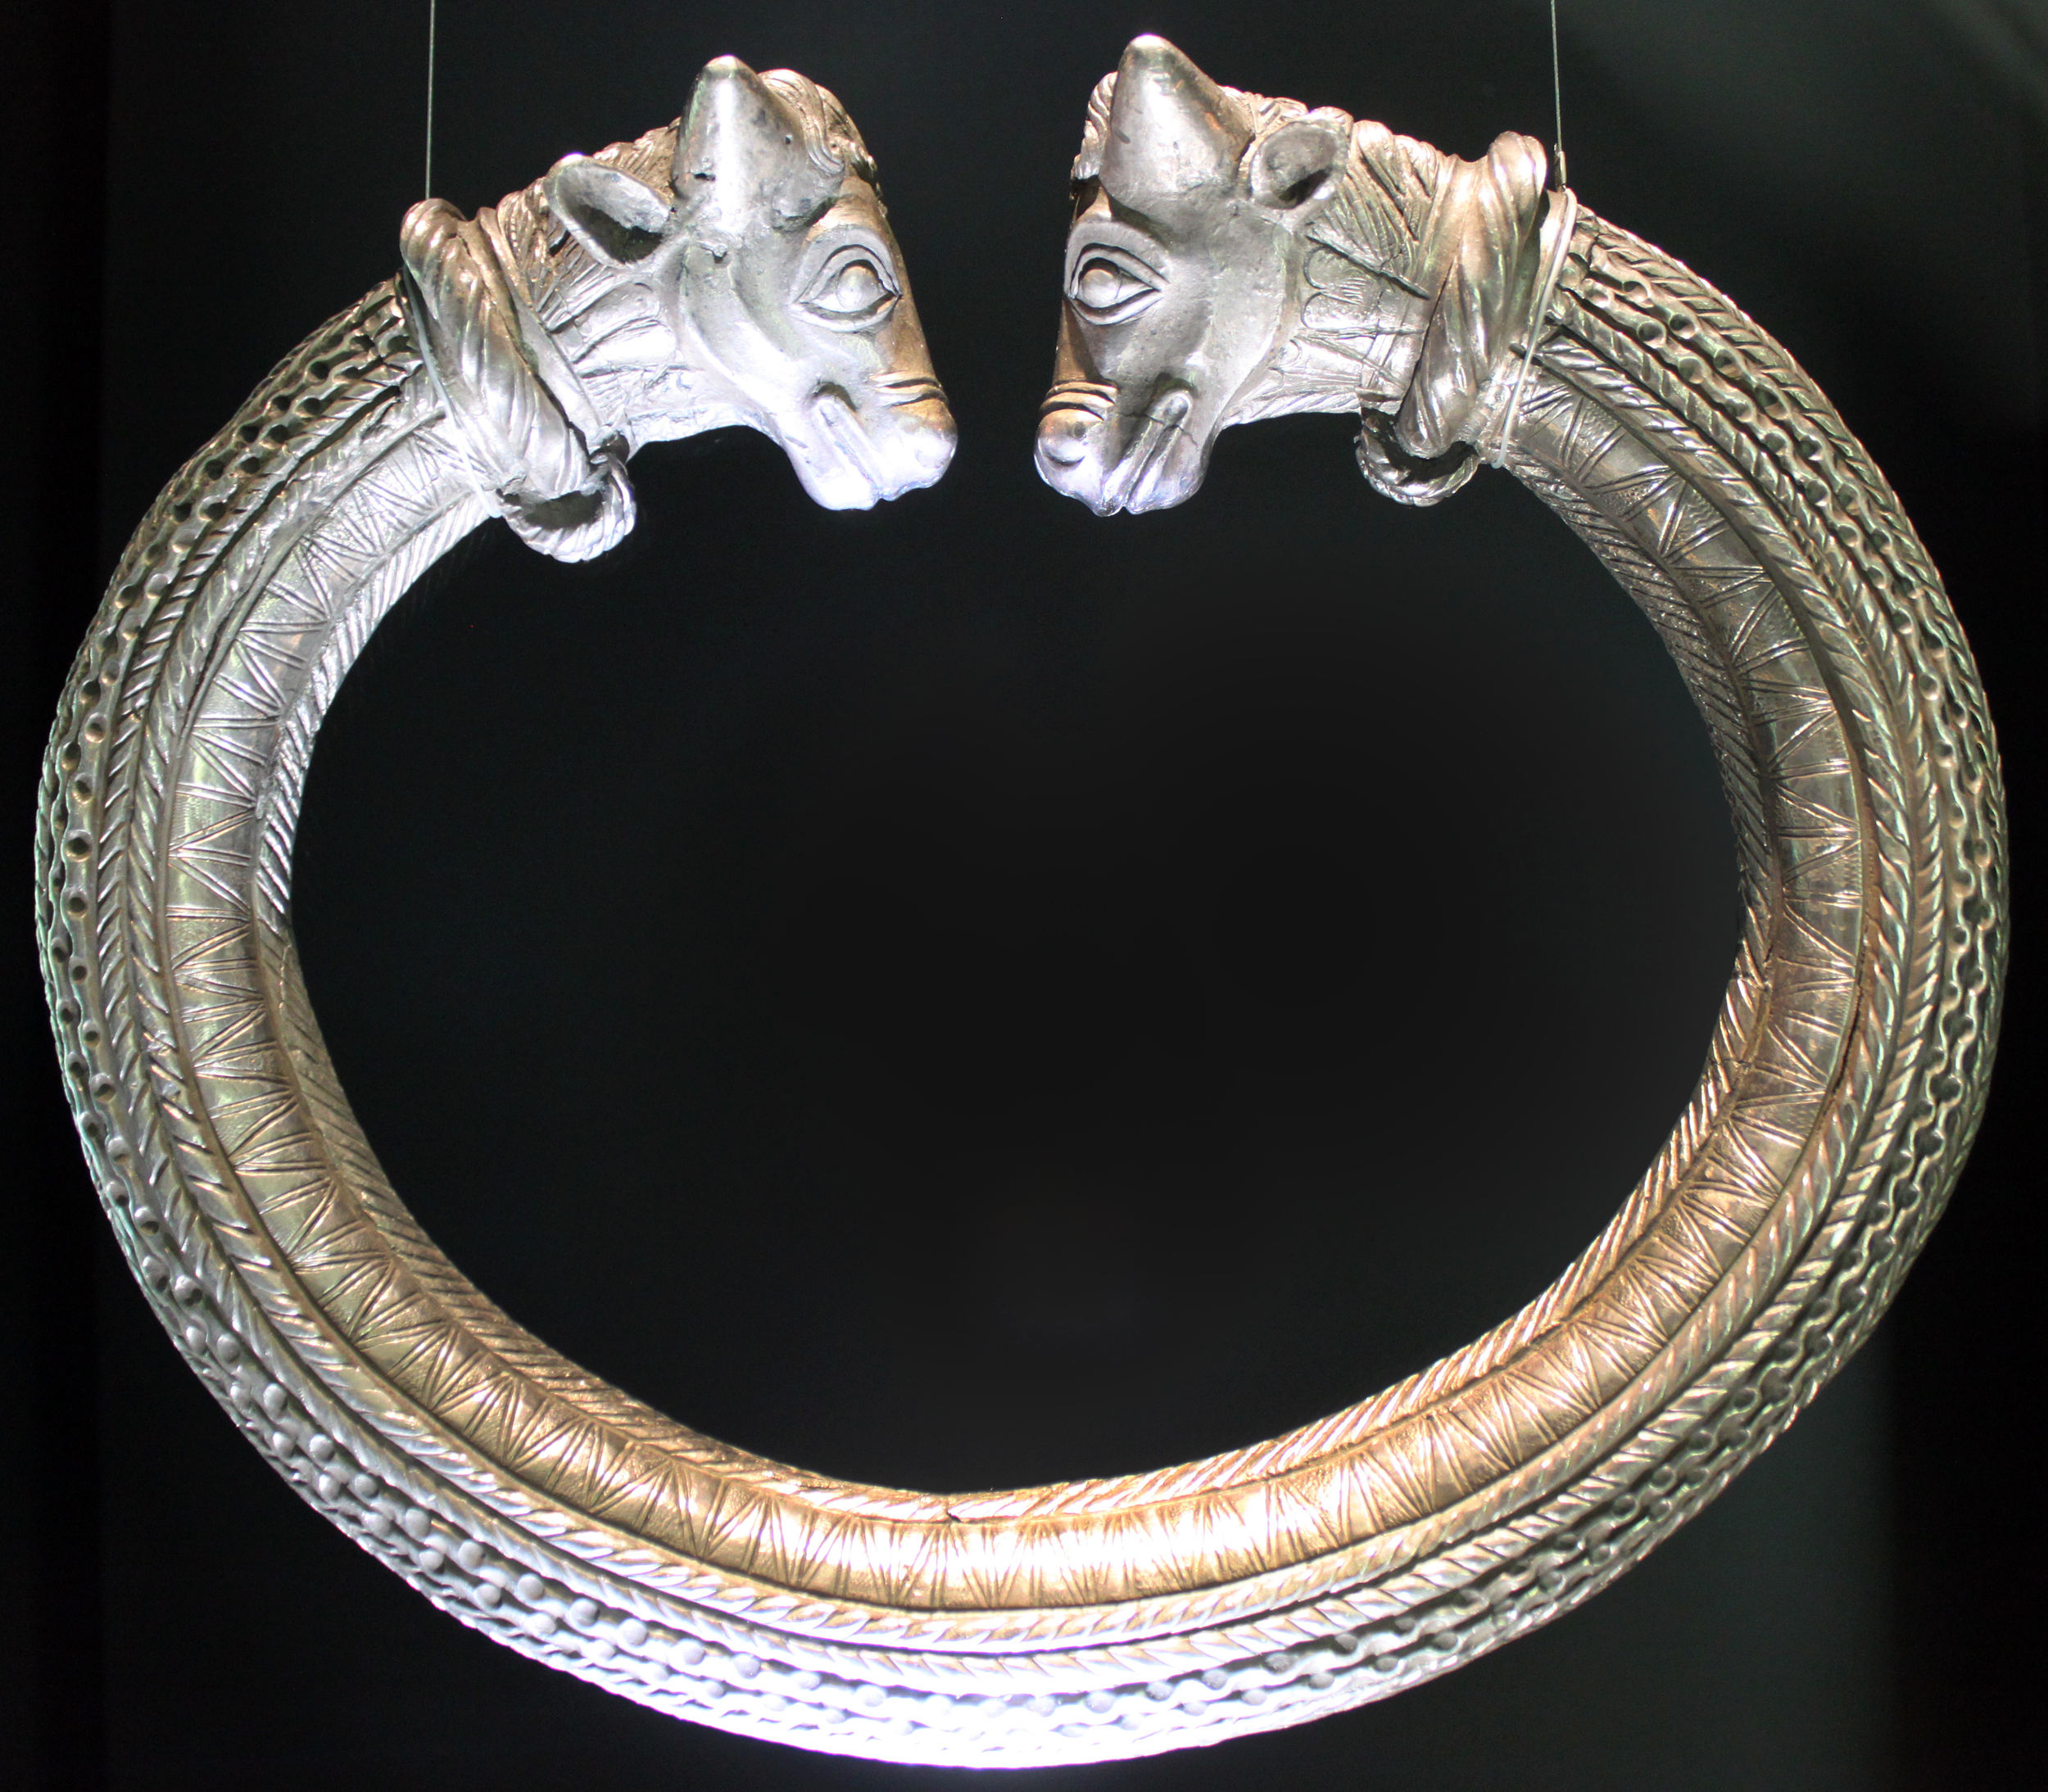 Silver Ring with bull's head ends, 1st century BC, Rottweil Region, shown at the Landesmuseum Württemberg, Stuttgart, Germany